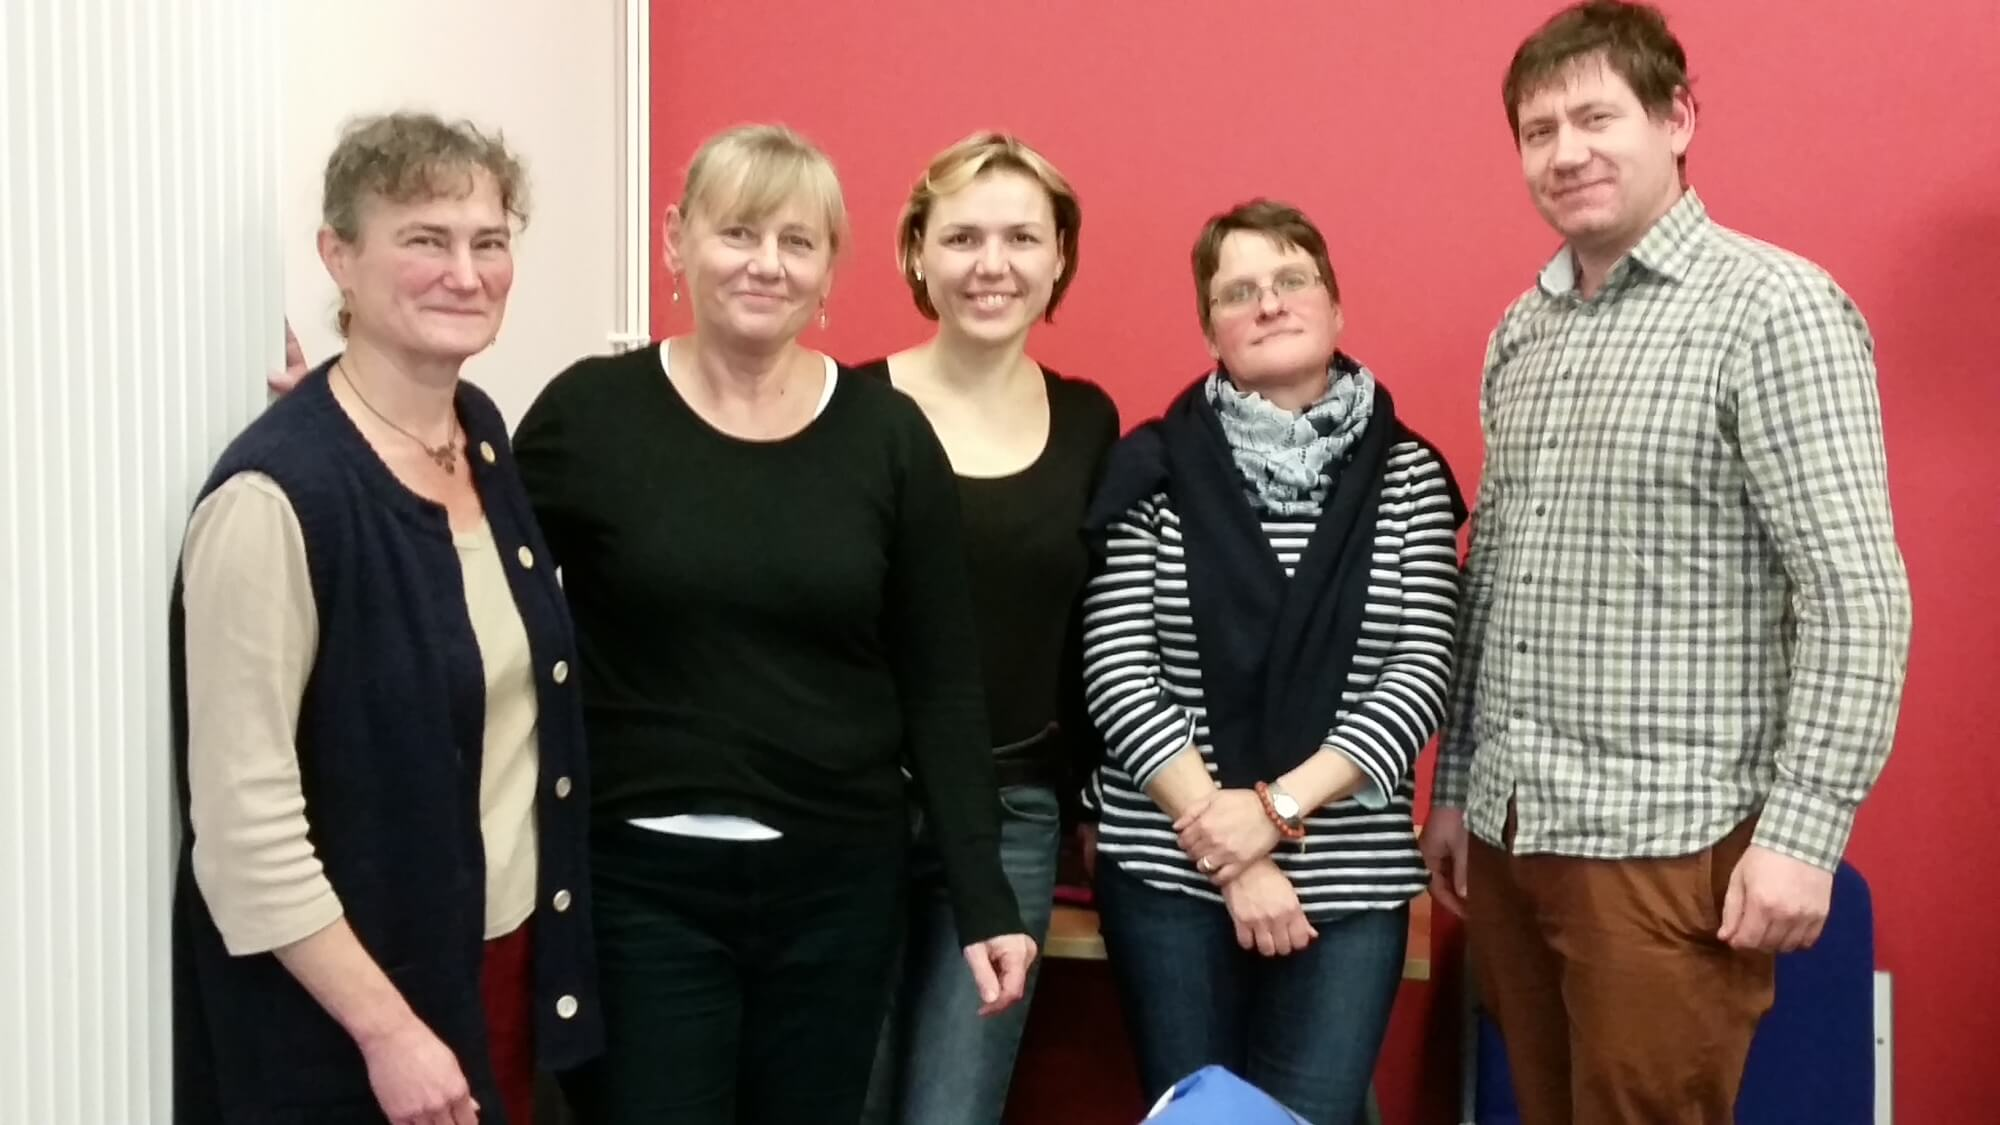 CCRI welcome researchers from the Czech Republic